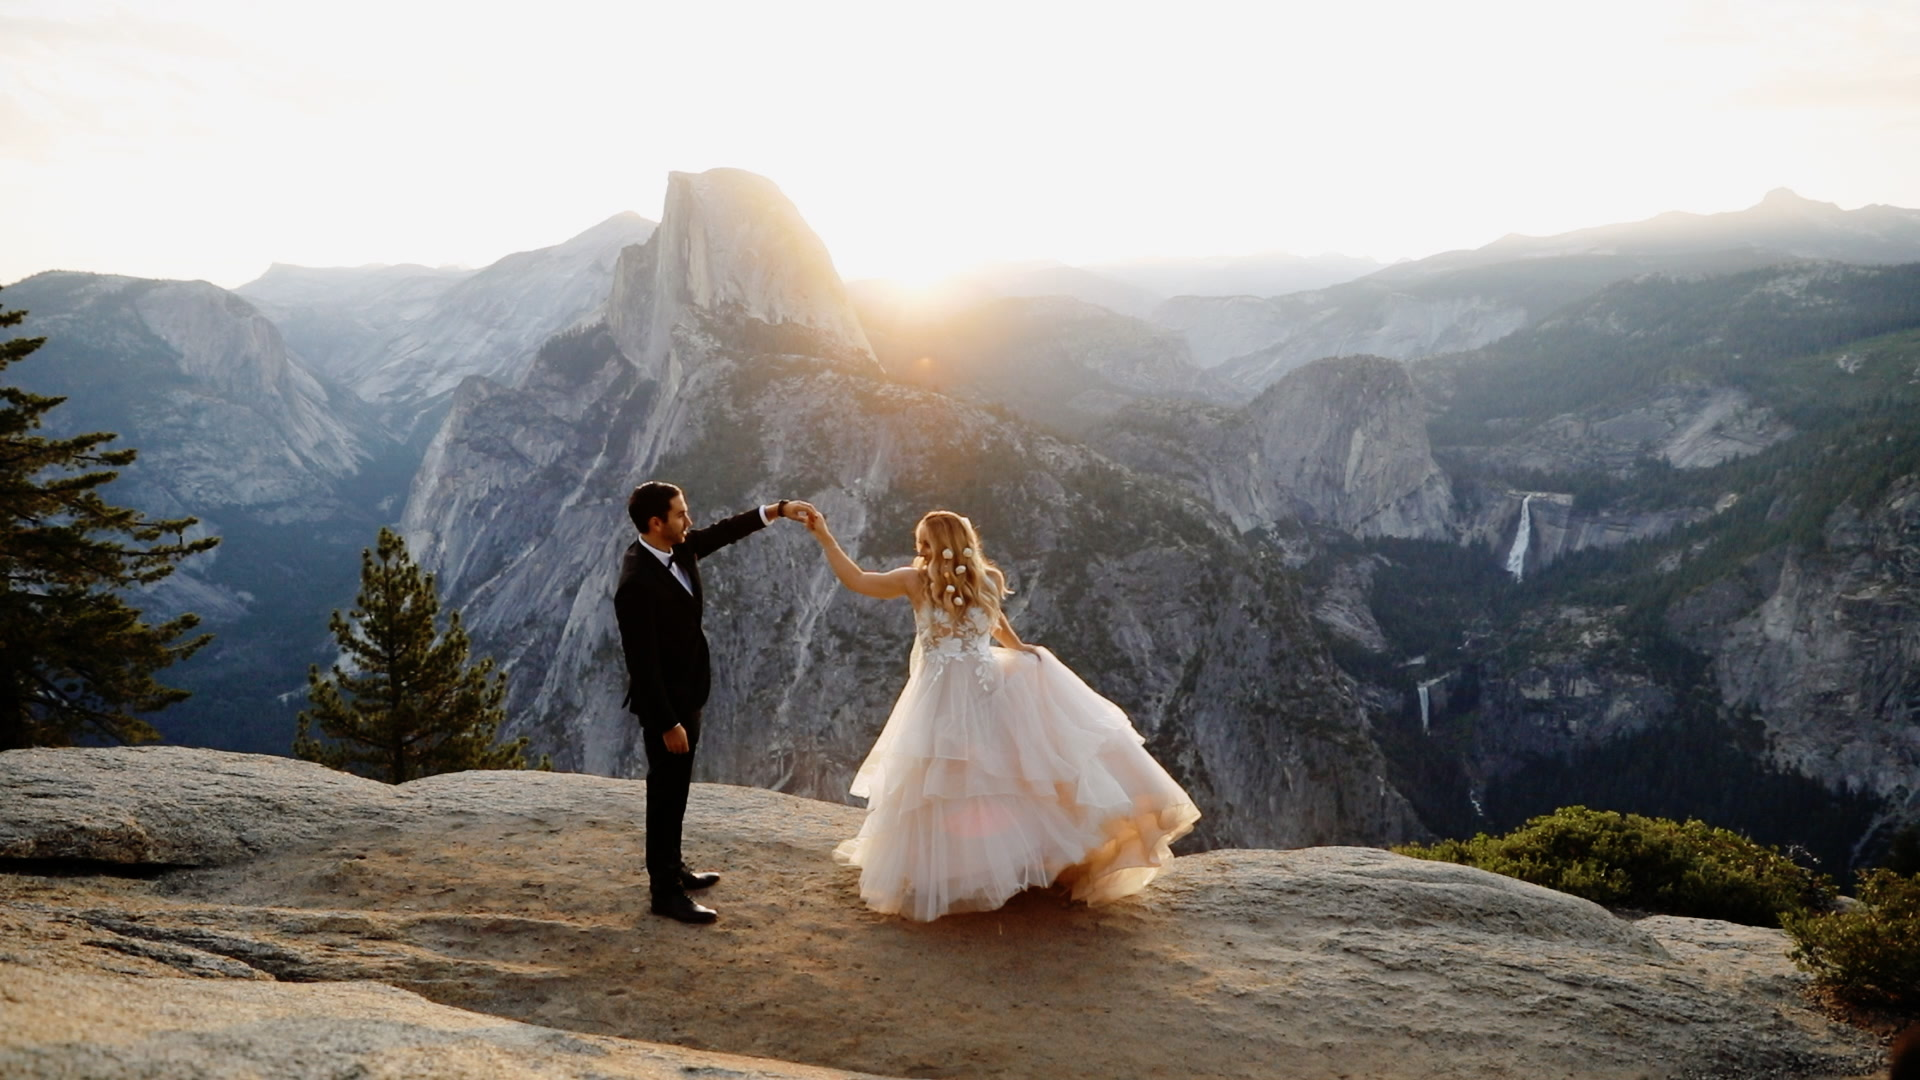 Bridget + Mark | Yosemite Valley, California | Yosemite National Park